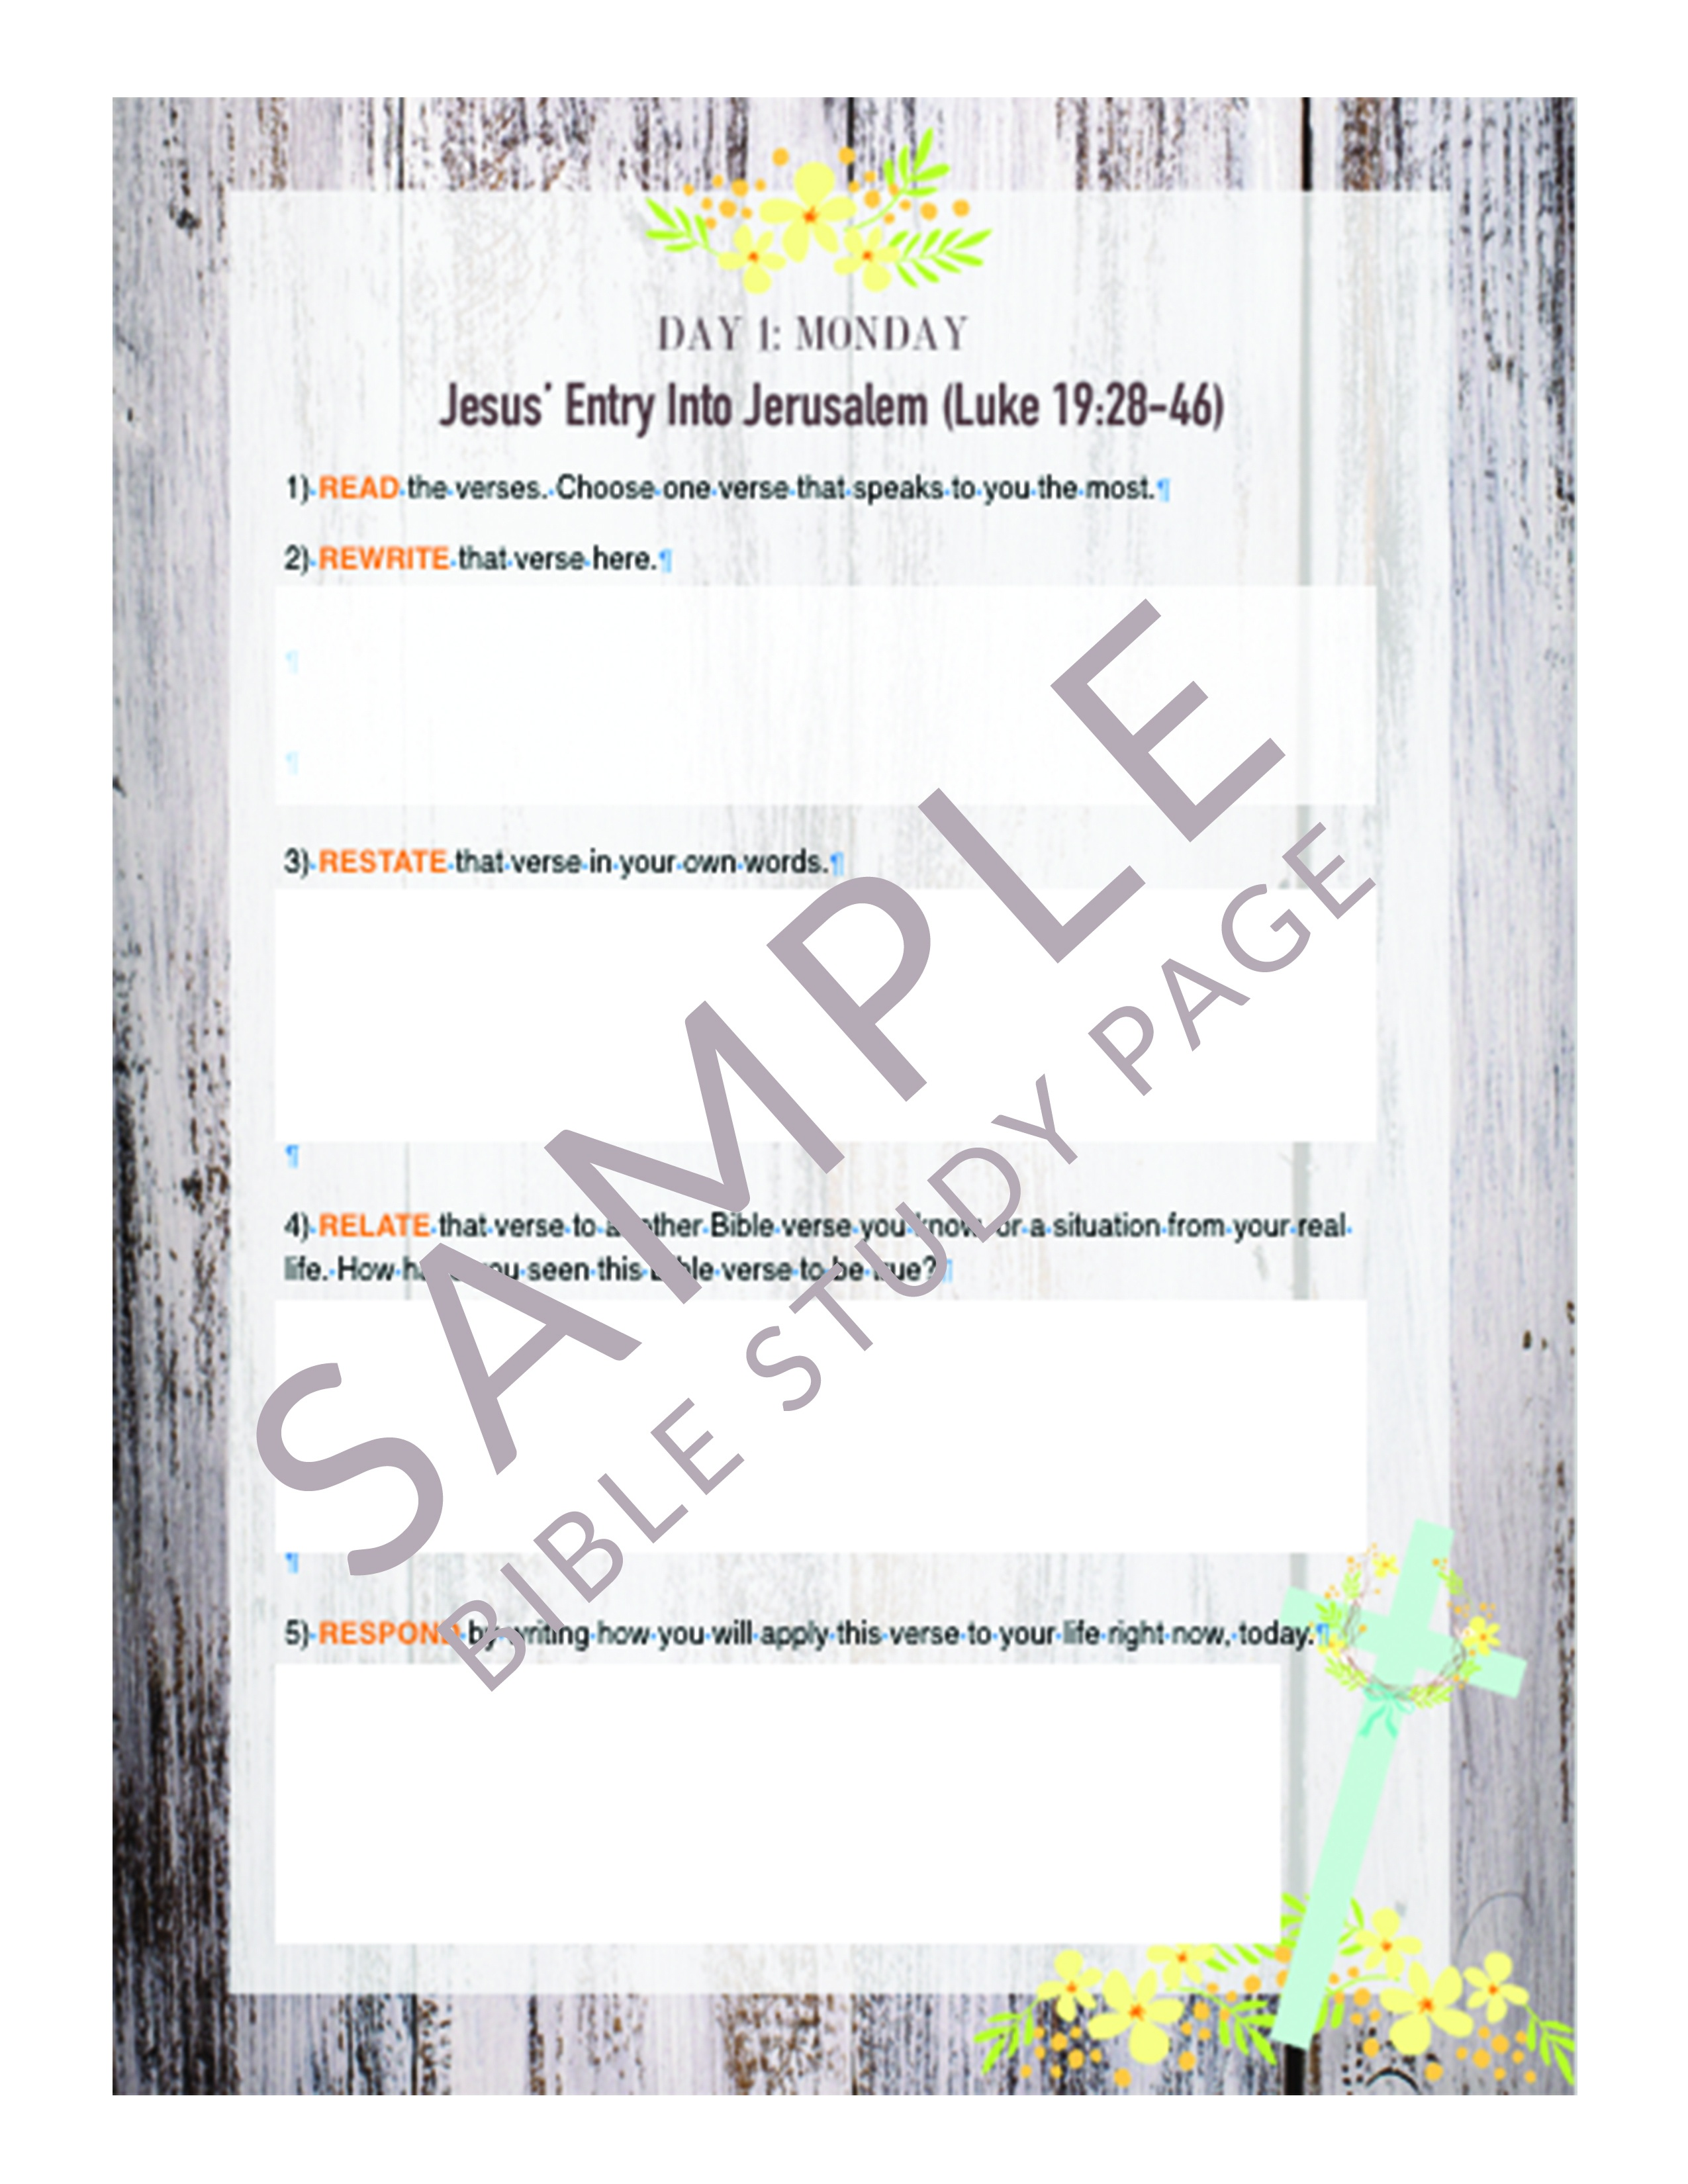 Best Easter Bible Study Lessons Printables For Families - Christ - Free Printable Bible Study Lessons With Questions And Answers